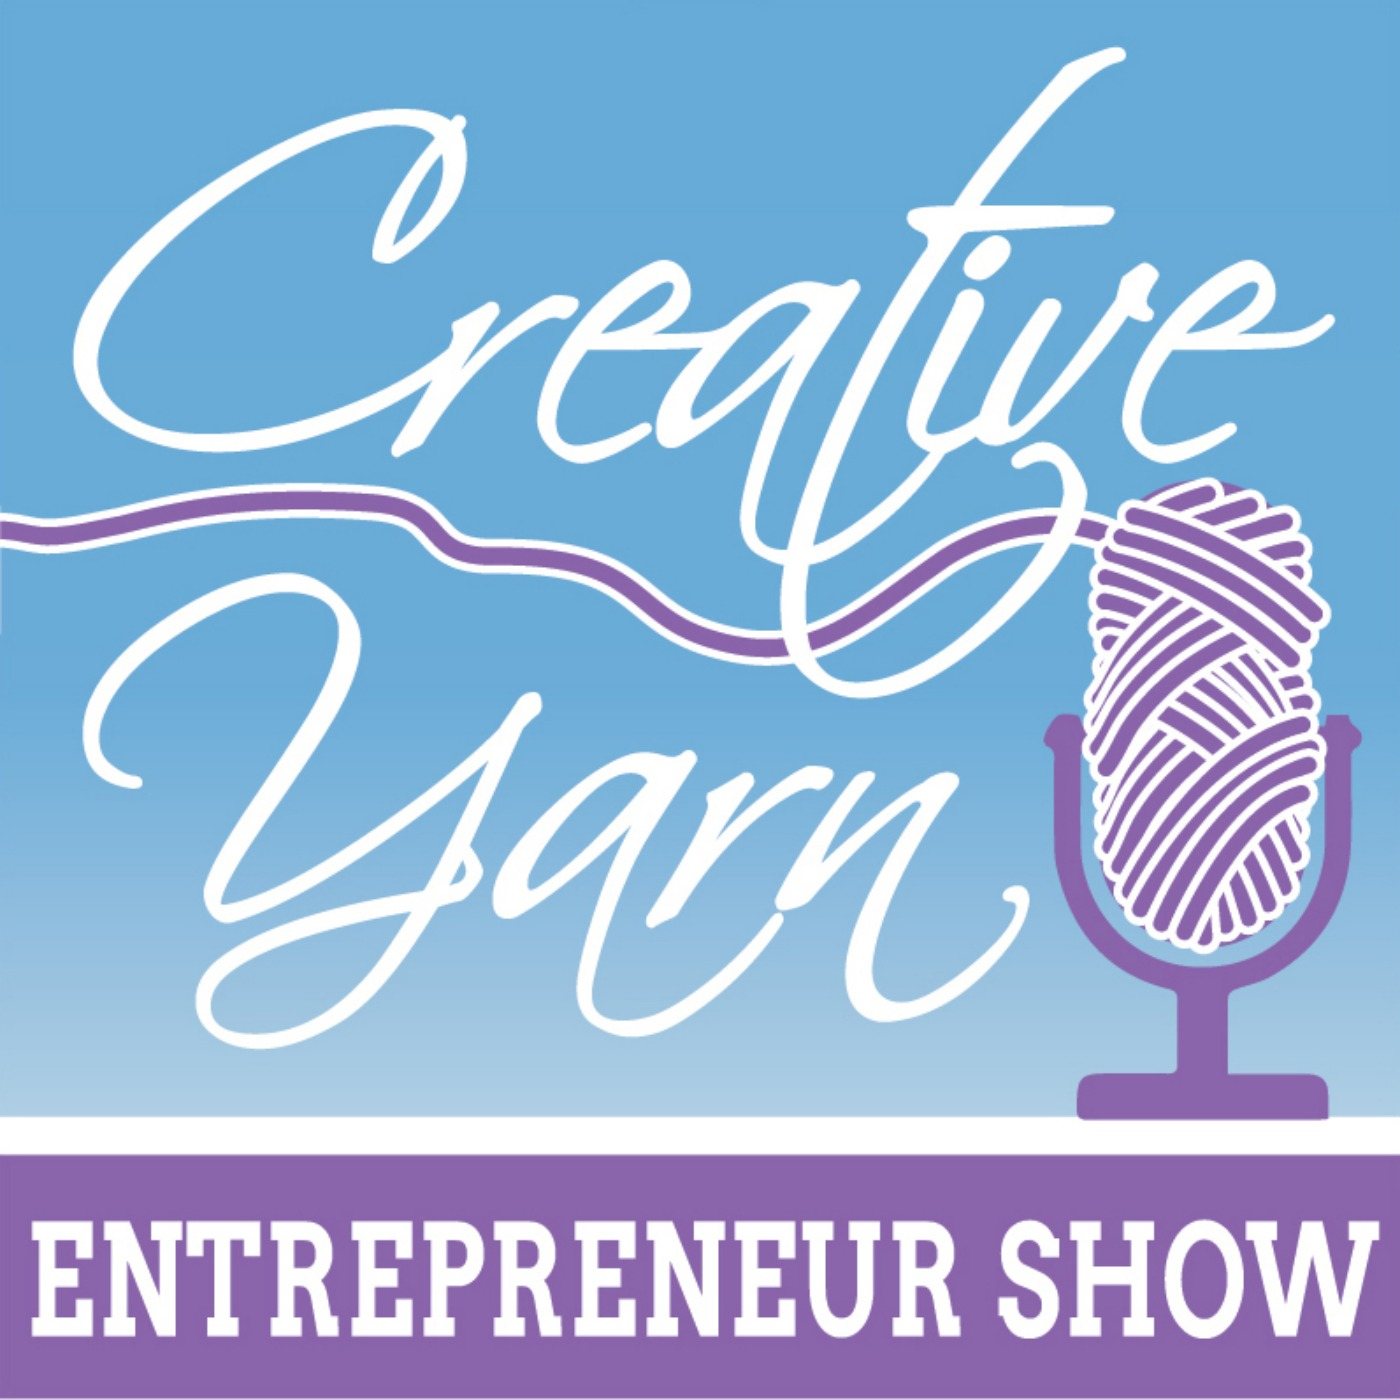 Episode 35: Social Media Spring Cleaning - The Creative Yarn Entrepreneur Show